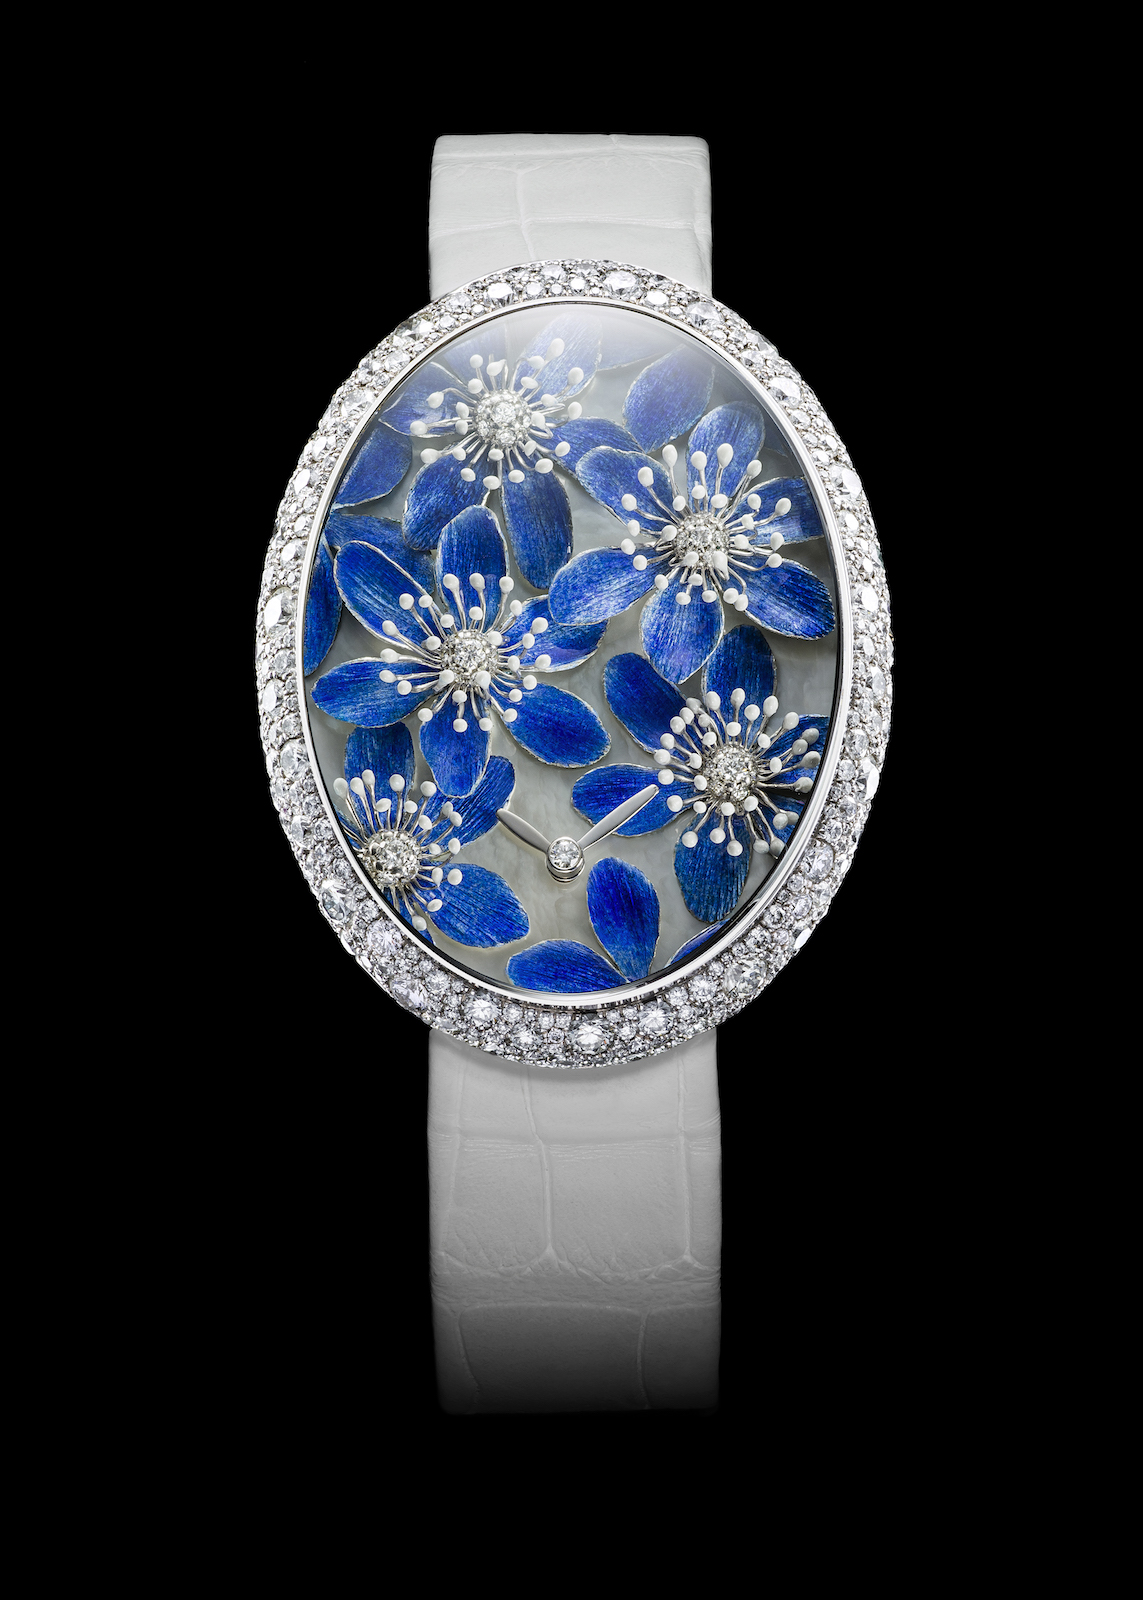 Melody in Blue Swiss watch by Van't Hoff